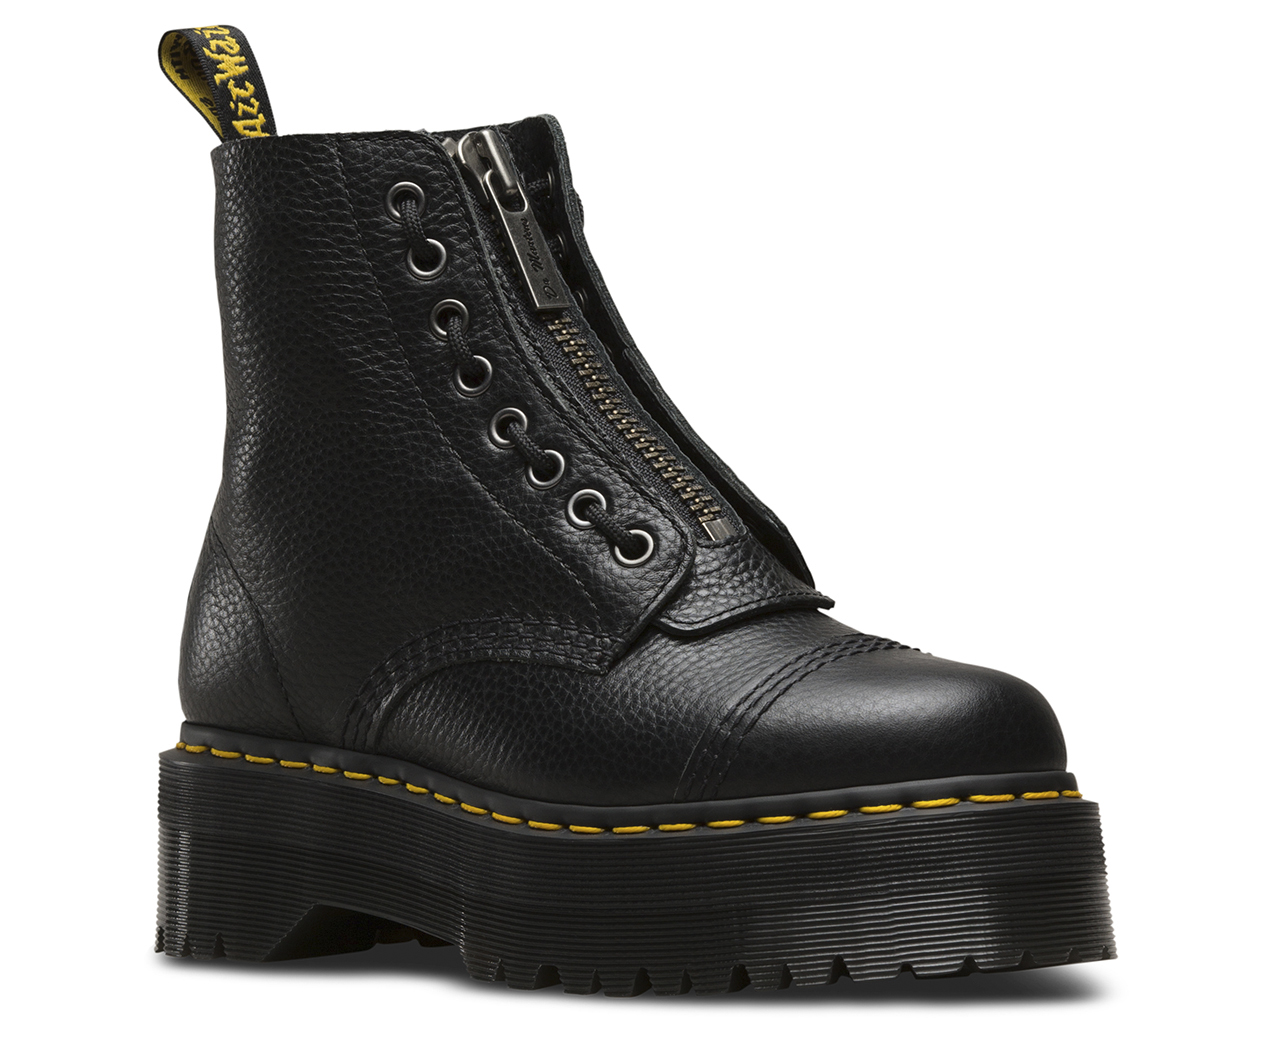 Best Dr Martens Shoes